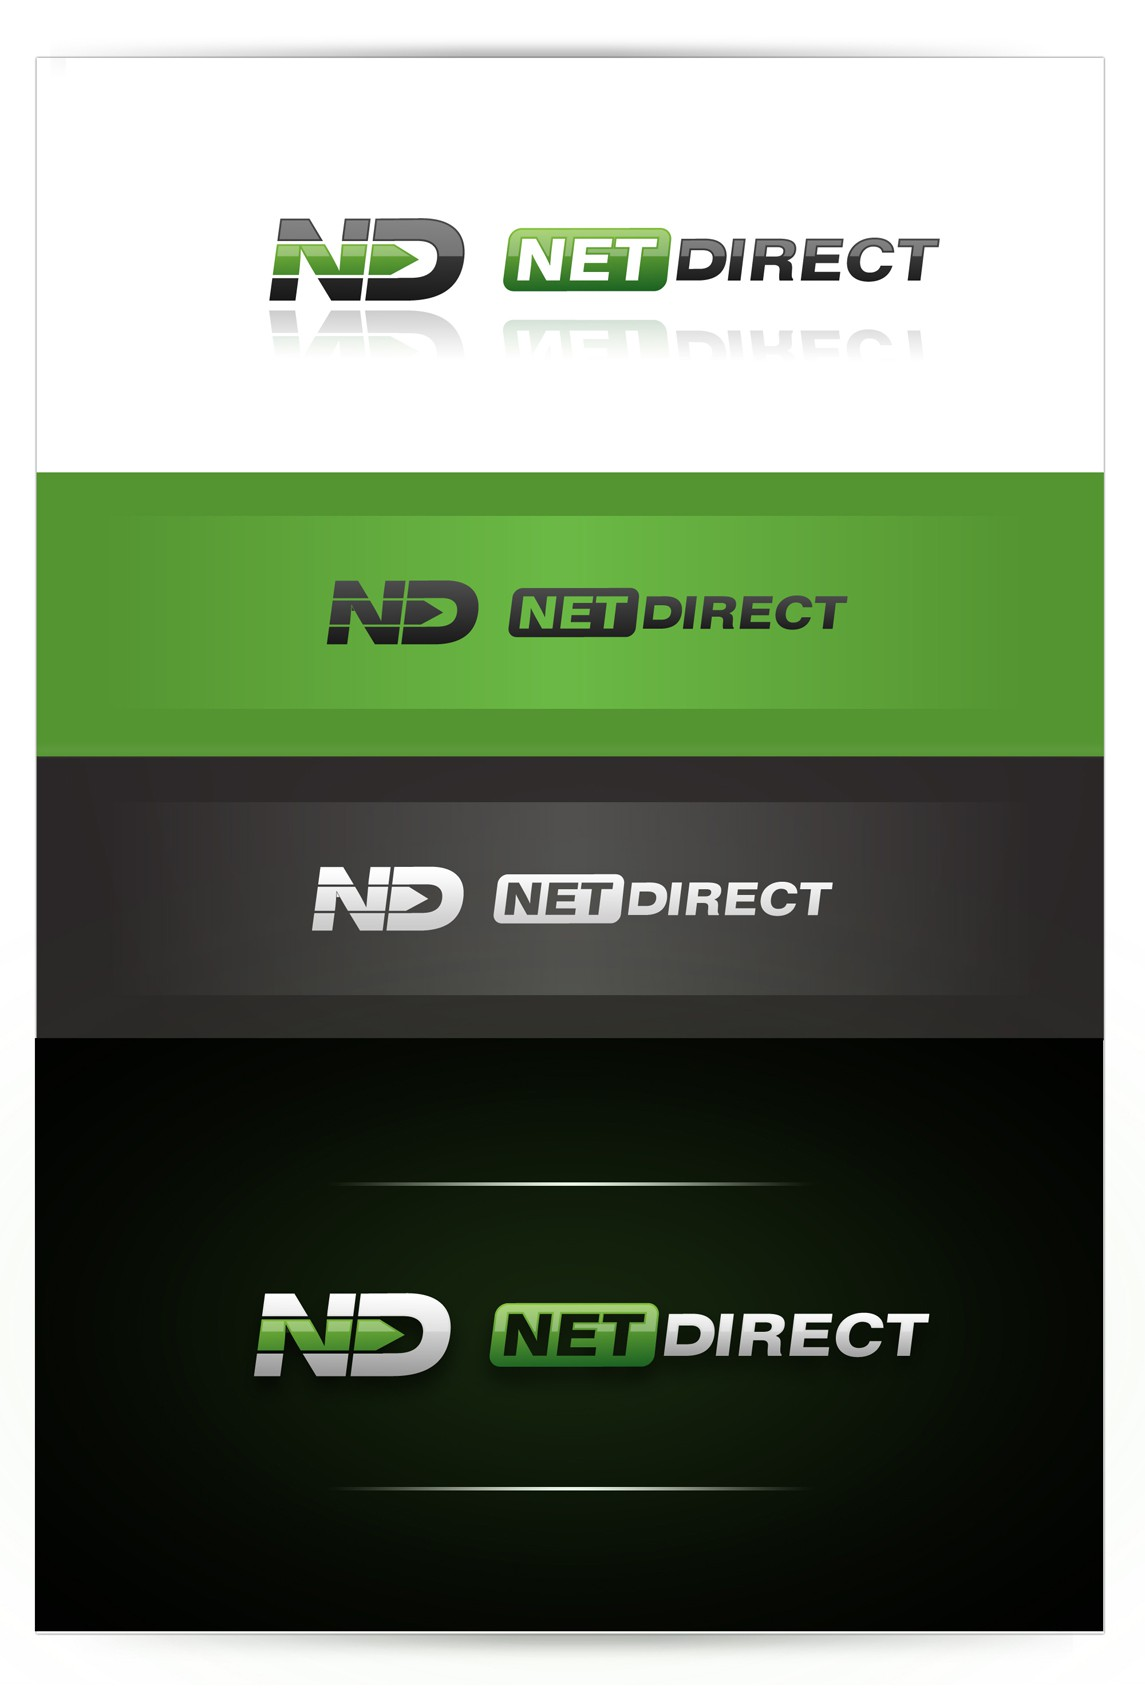 New logo wanted for Net Direct